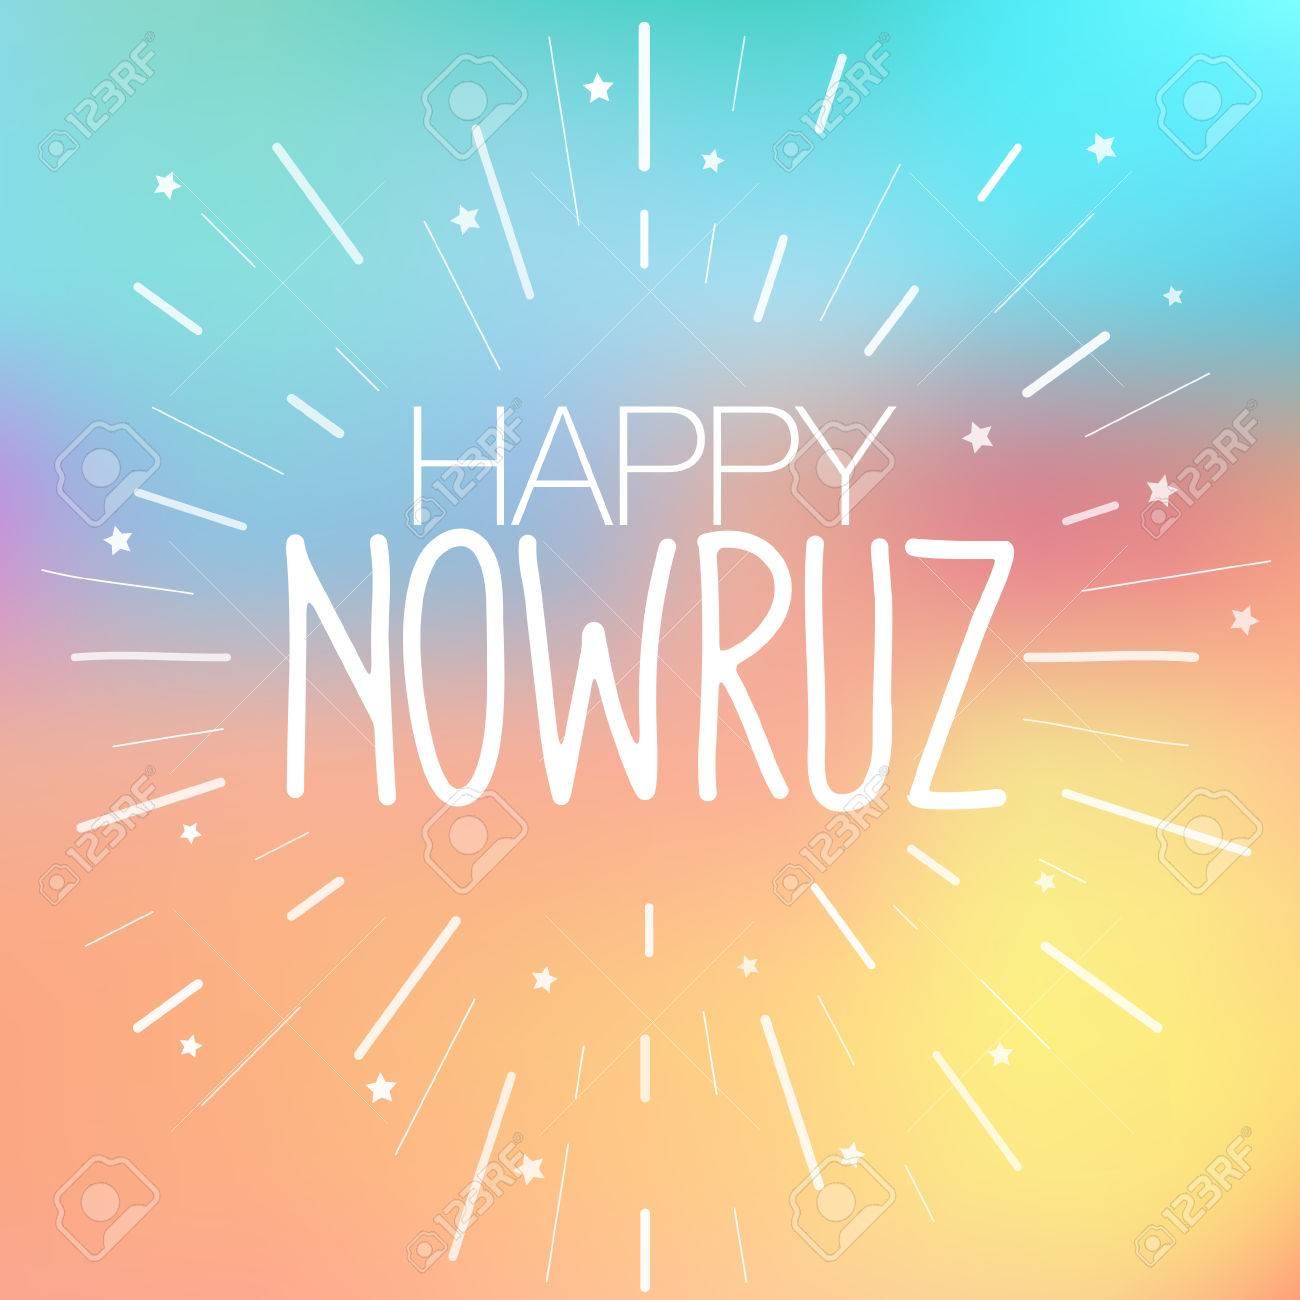 Happy nowruz greeting card iranian persian new year march happy nowruz greeting card iranian persian new year march equinox colorful vector m4hsunfo